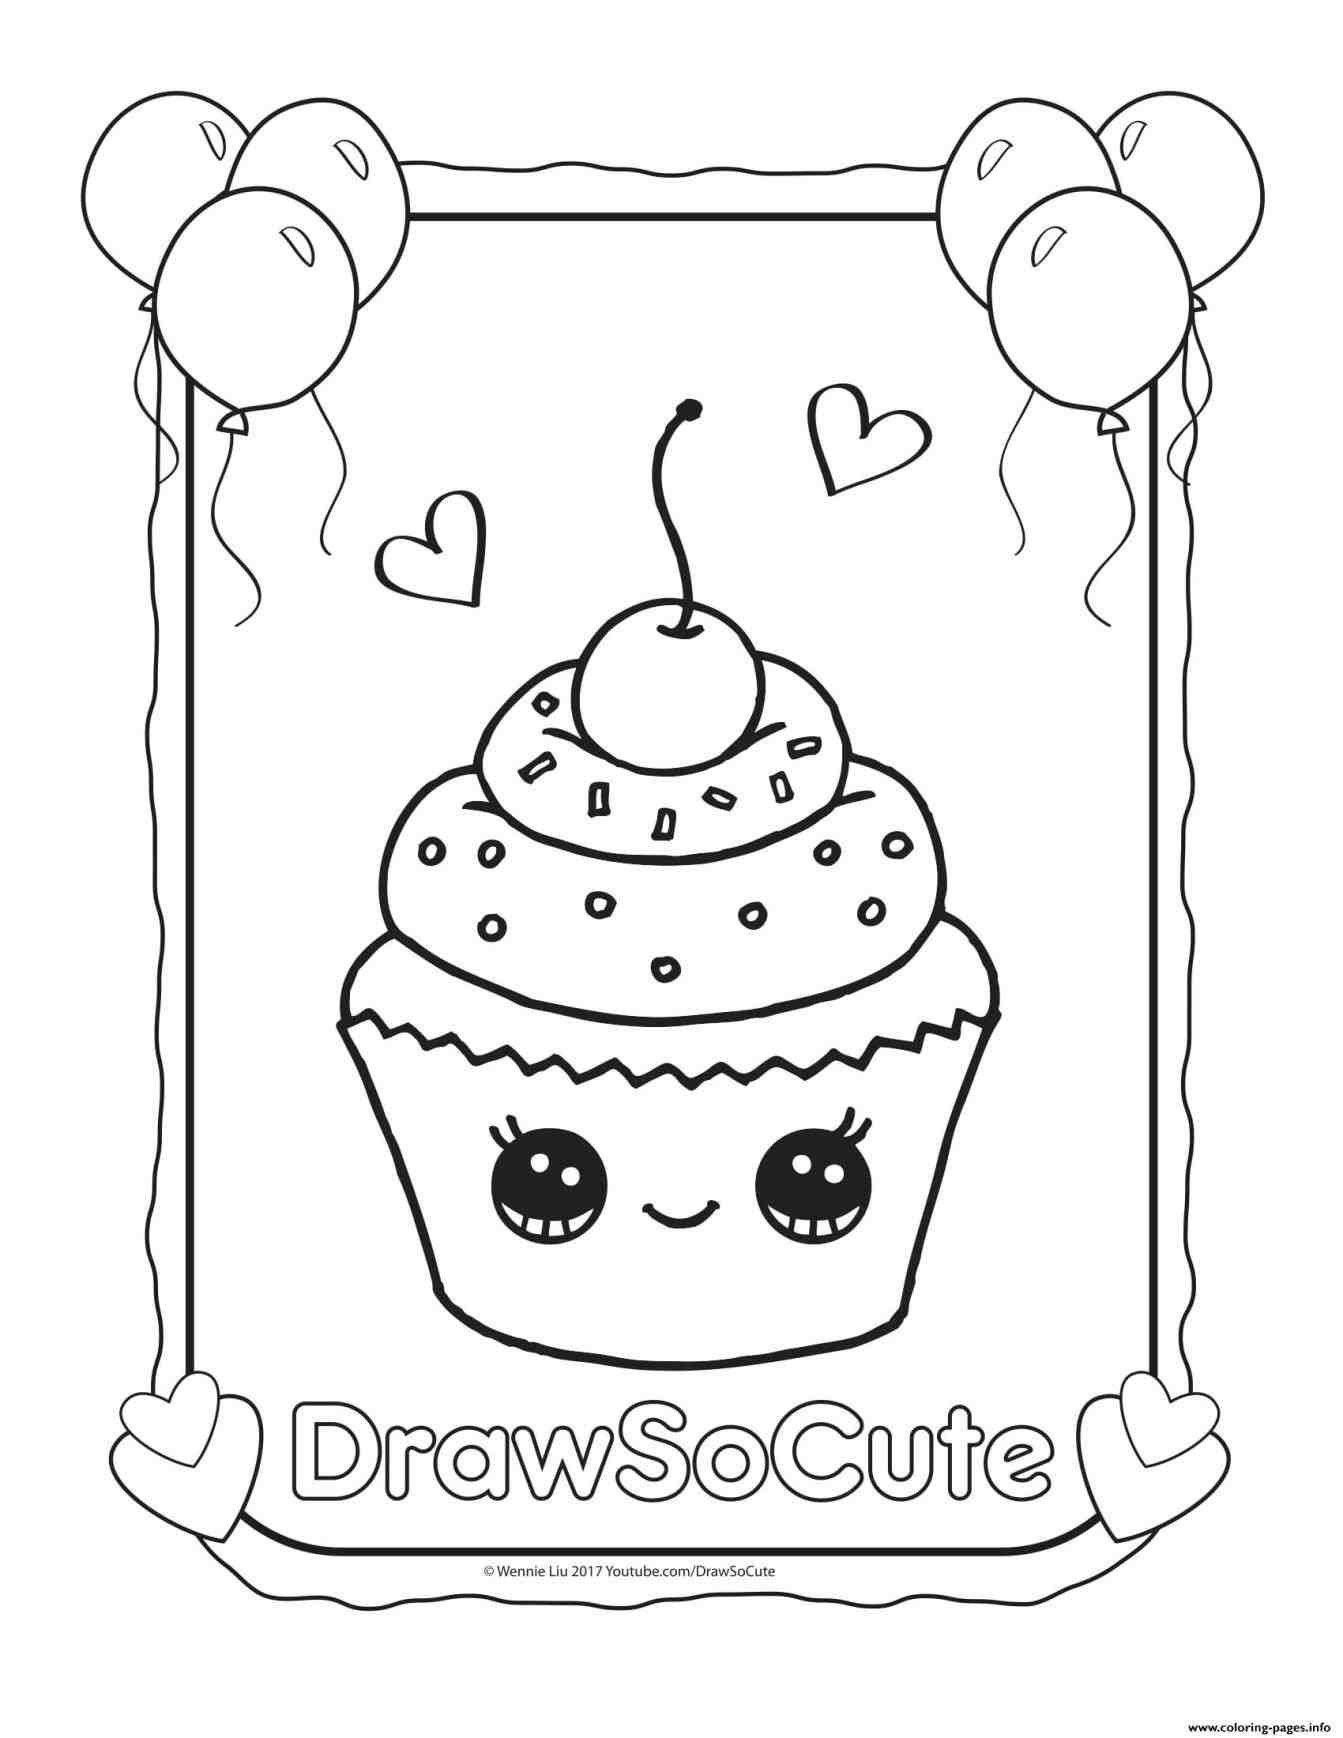 Excellent Image Of Starbucks Coloring Page Davemelillo Com Cupcake Coloring Pages Food Coloring Pages Cute Coloring Pages